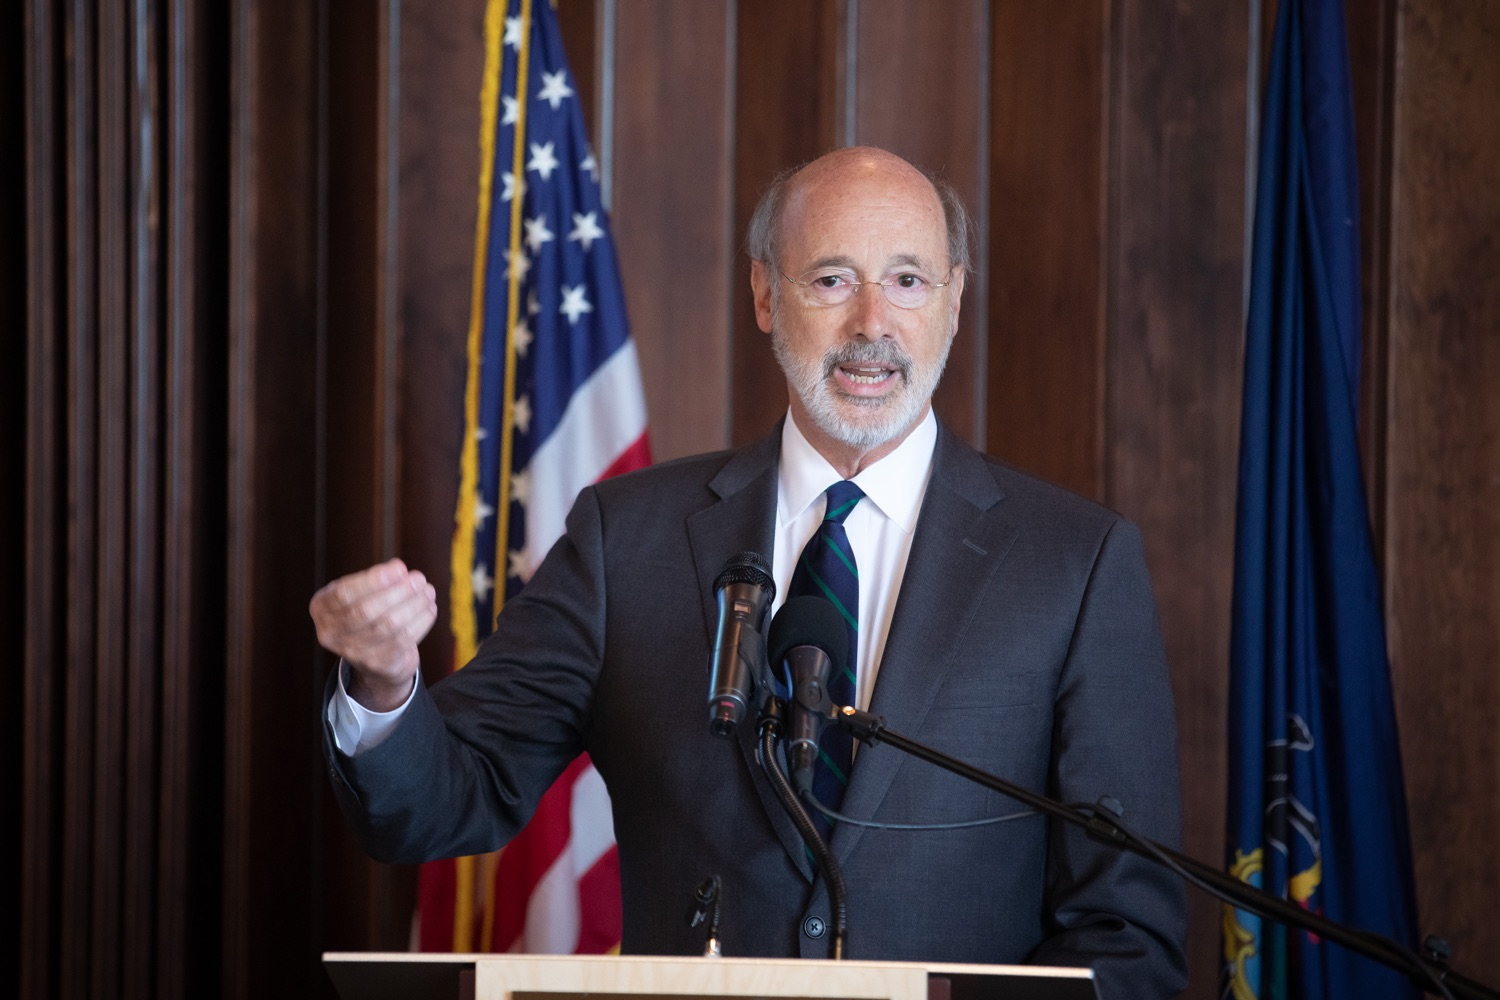 """<a href=""""https://filesource.wostreaming.net/commonwealthofpa/photo/17467_gov_opioids_dz_018.JPG"""" target=""""_blank"""">⇣Download Photo<br></a>Boalsburg, PA  Governor Tom Wolf addressing the summit.  Governor Tom Wolf today kicked off his administrations first Opioid Command Center Opioid Summit: Think Globally, Act Locally, which brought together 200 individuals helping their communities fight the opioid crisis, including community organizations, non-profits, schools, health care workers, addiction and recovery specialists, and families affected by the opioid crisis.  Tuesday, October 1, 2019"""